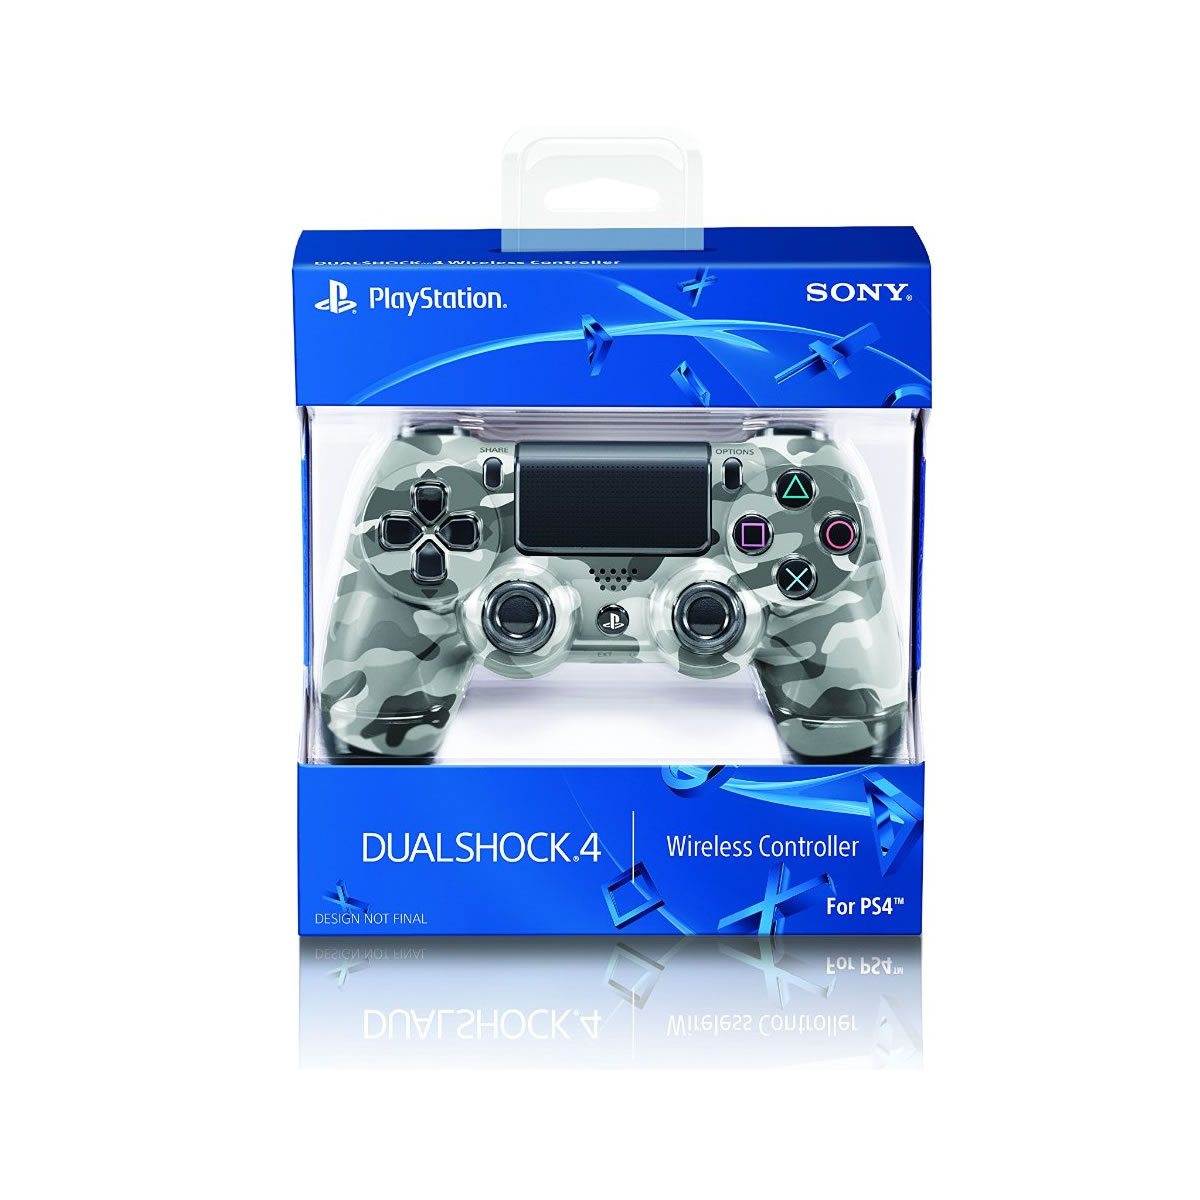 SONY OFFICIAL WIRELESS CONTROLLER DUALSHOCK 4 Urban Camouflage - SONY ������� �������� ����������� DUALSHOCK 4 ���������� (PS4)